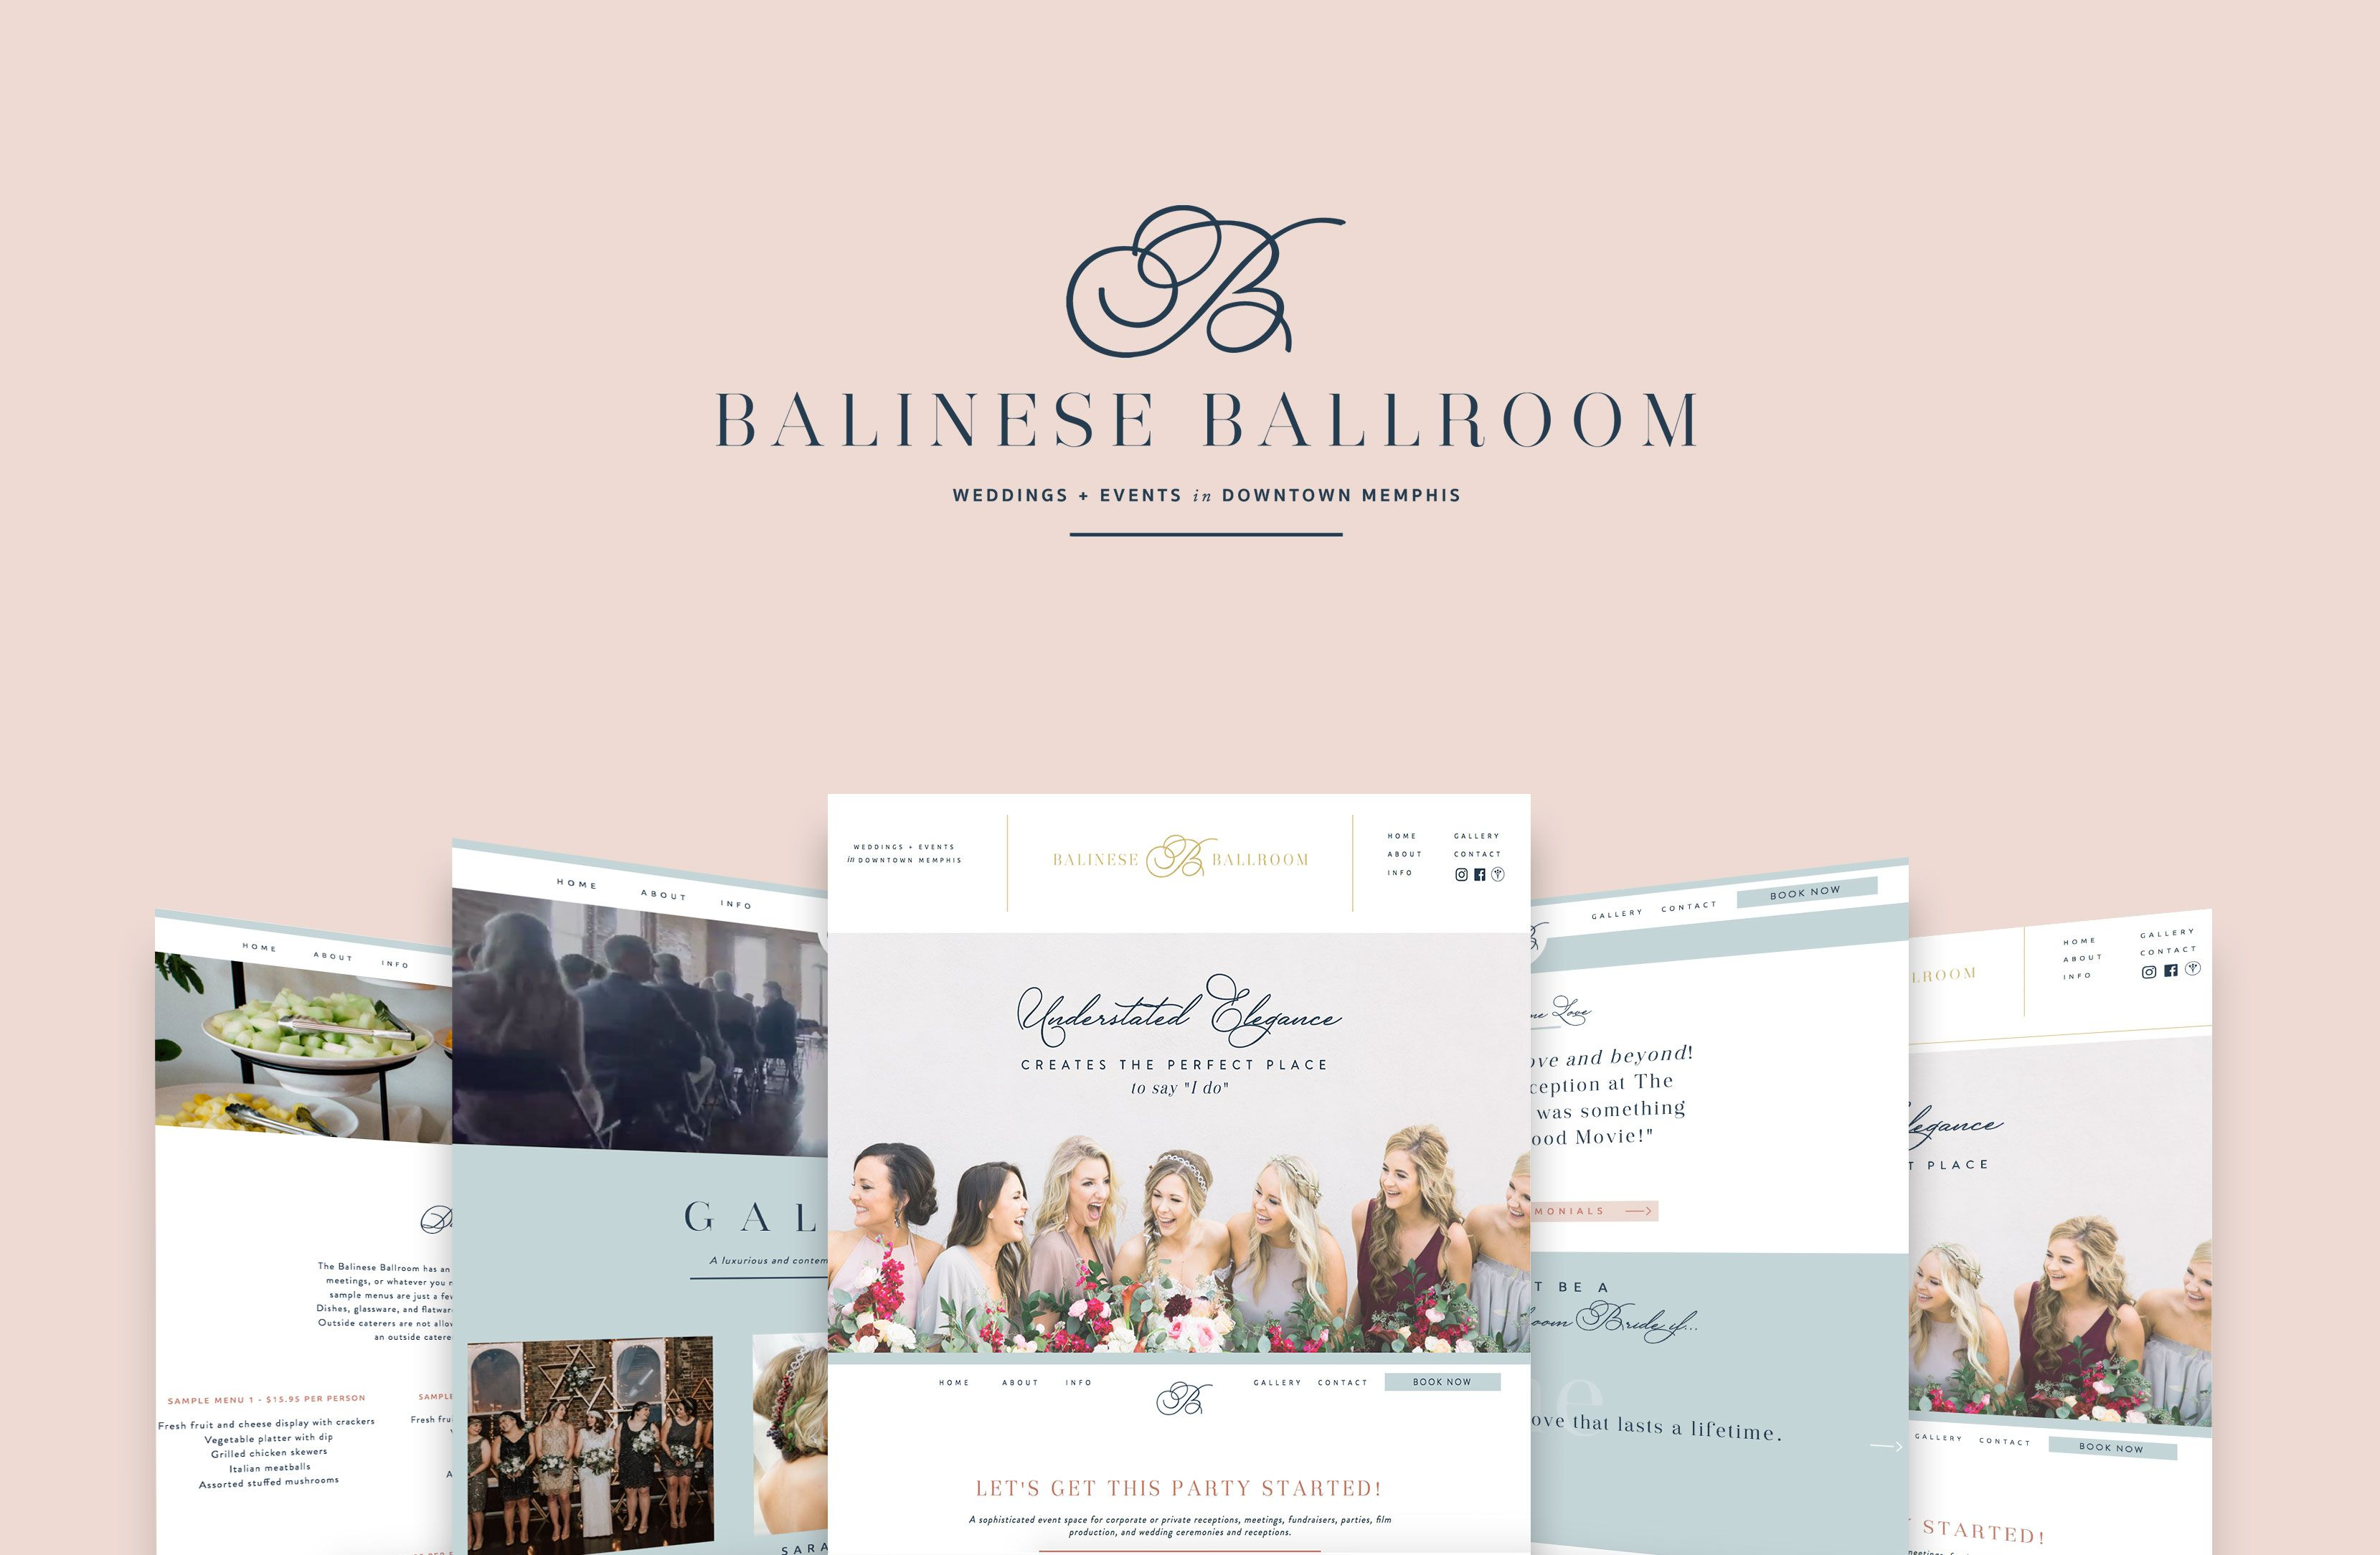 Balinese Ballroom Branding Website Design Elizabeth Mccravy Minimal Website Design Contemporary Wedding Venues Branding Website Design